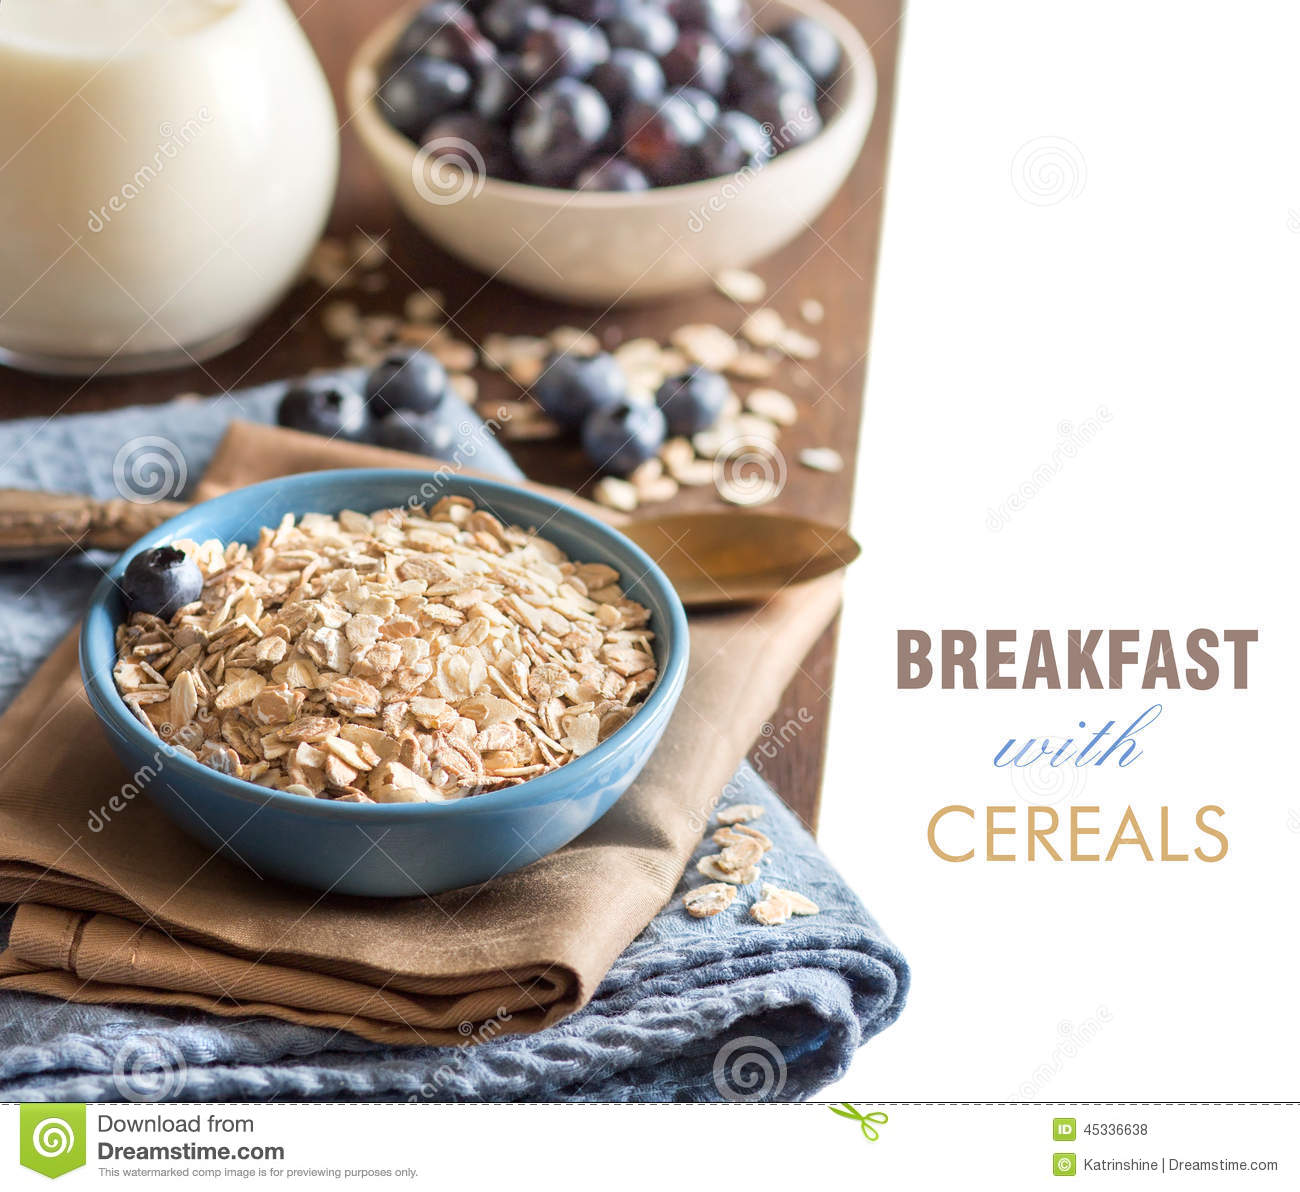 Cereals In A Bowl Stock Photo. Image Of Nutrition, Bowl